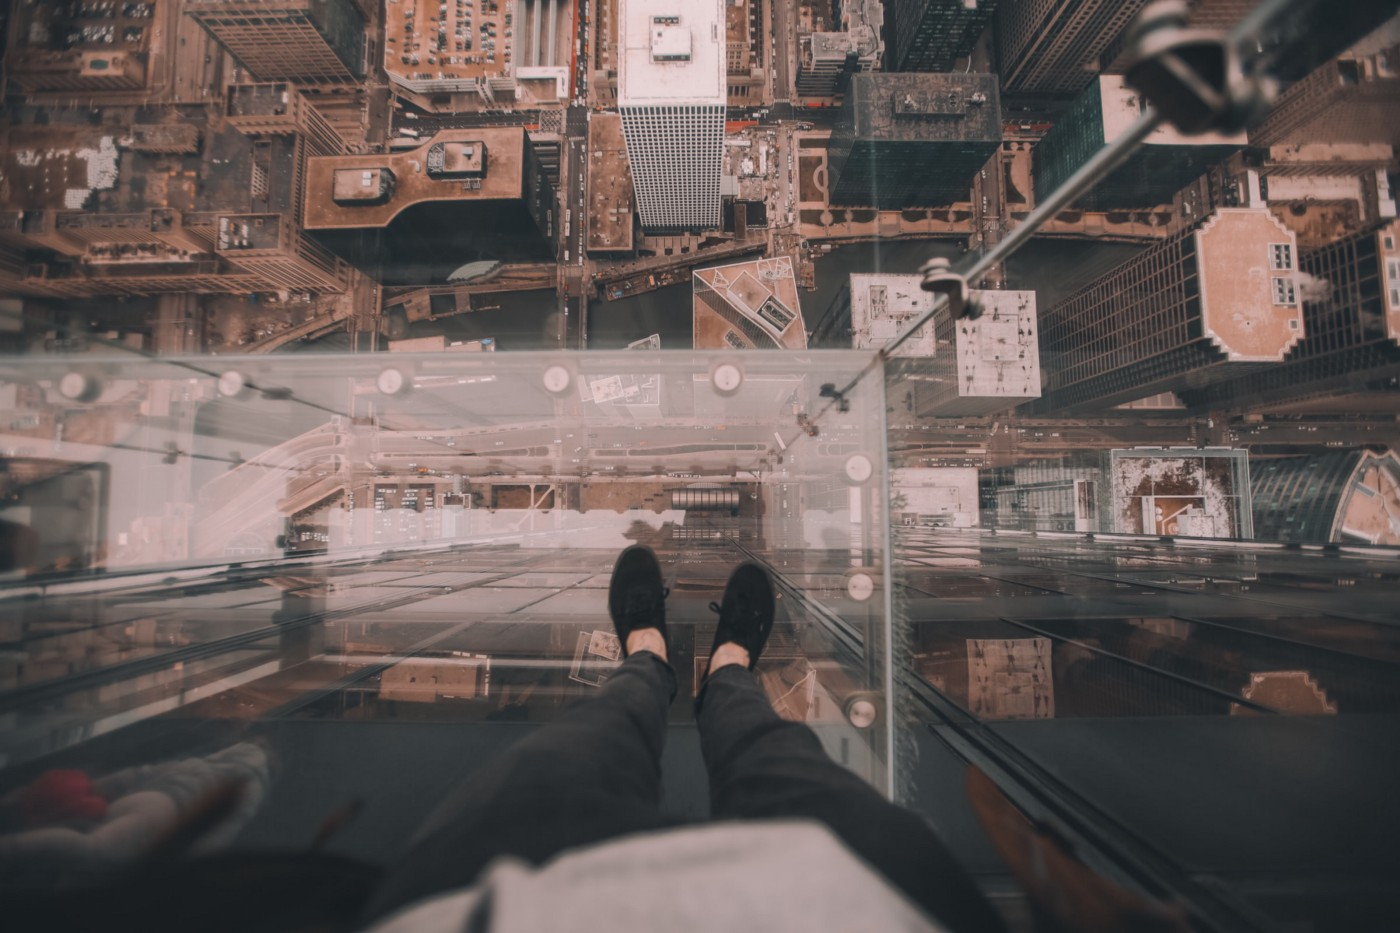 Someone standing on a glas ceiling looking down on their feet and the city beneath them from an ego perspective.